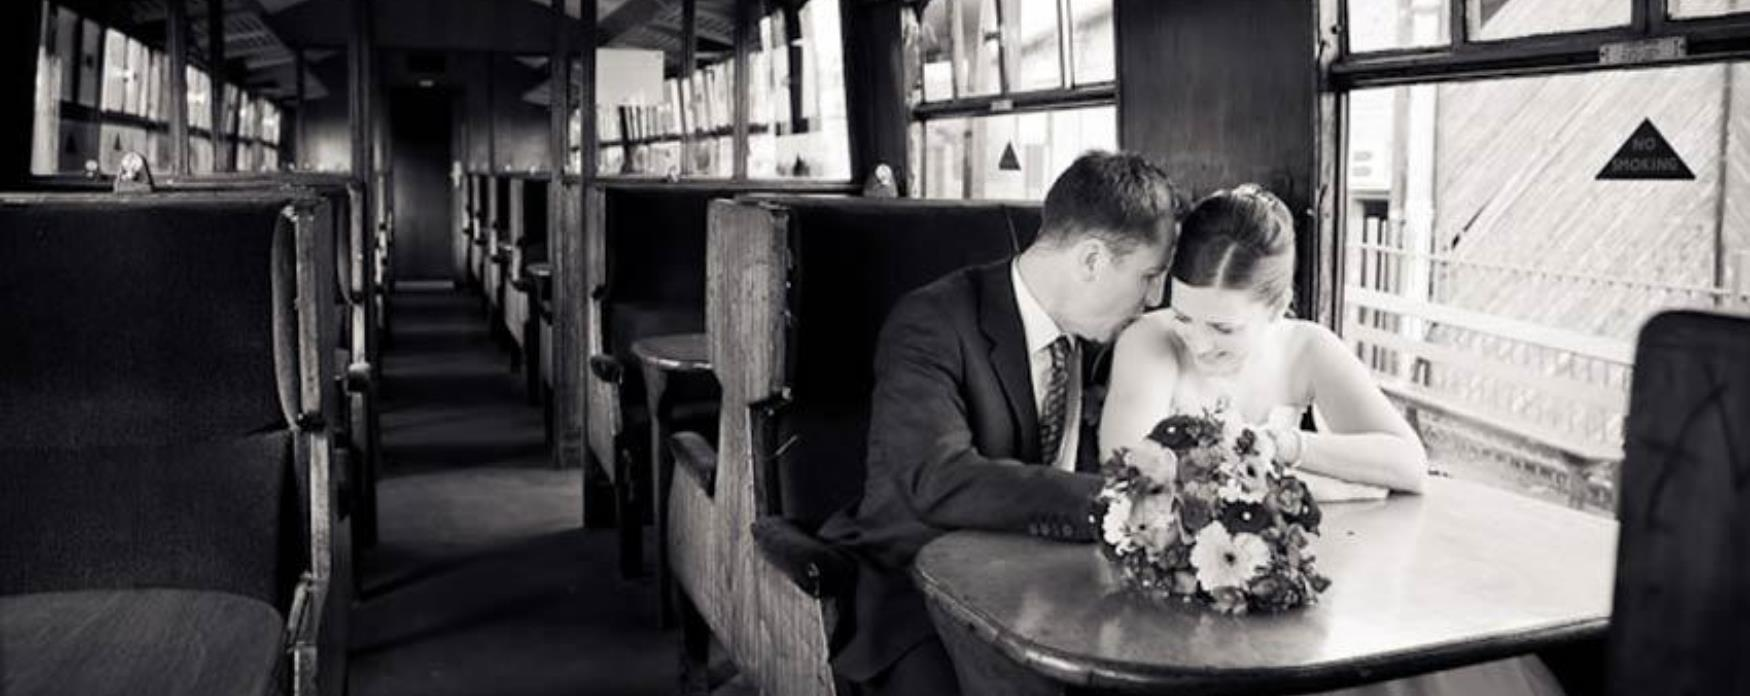 Couple sitting in a train carriage after getting married at East Anglian Railway Museum